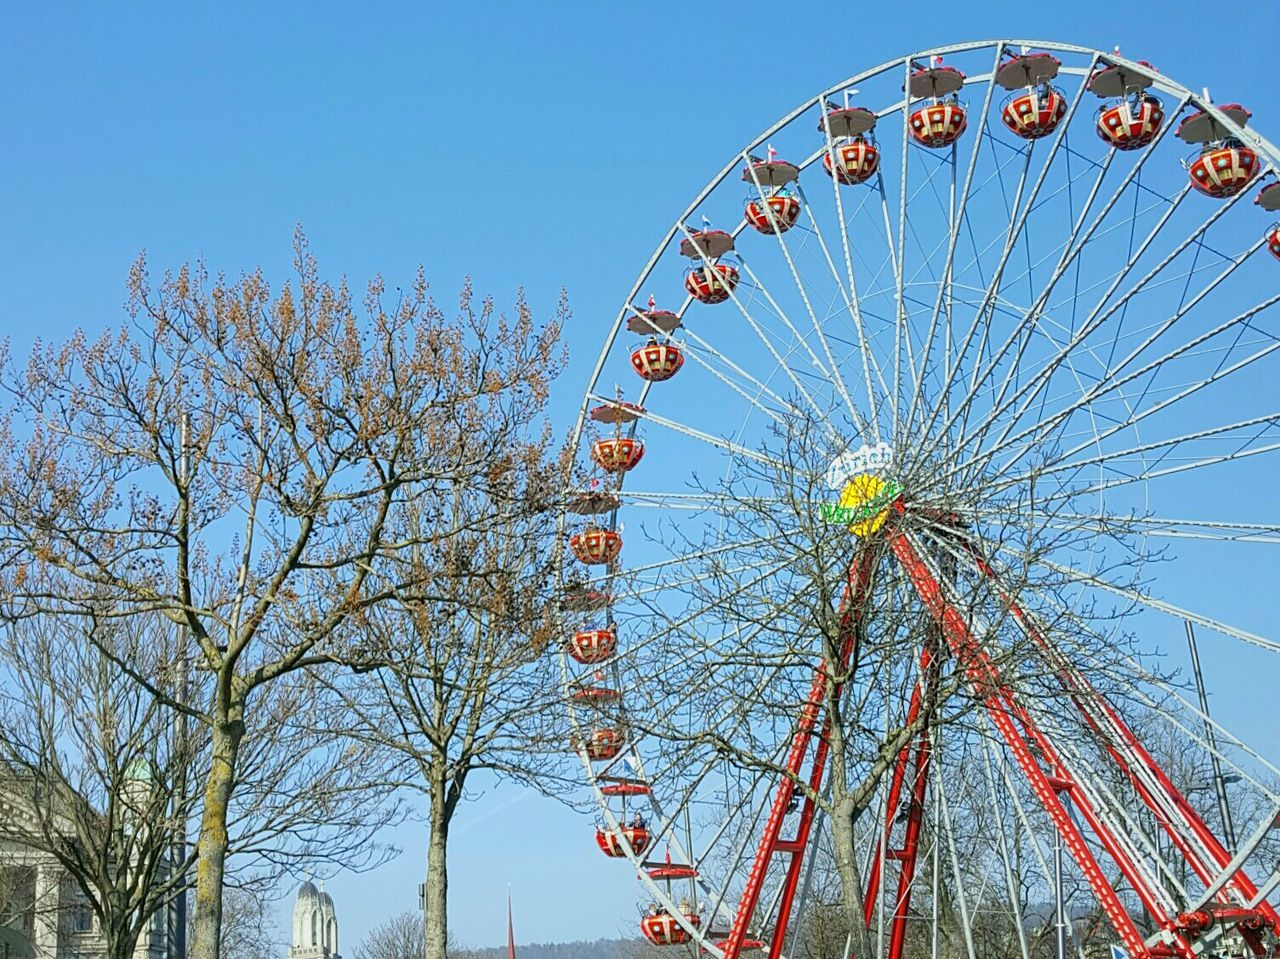 amusement park, arts culture and entertainment, ferris wheel, low angle view, tree, amusement park ride, big wheel, branch, day, no people, clear sky, blue, outdoors, bare tree, sky, nature